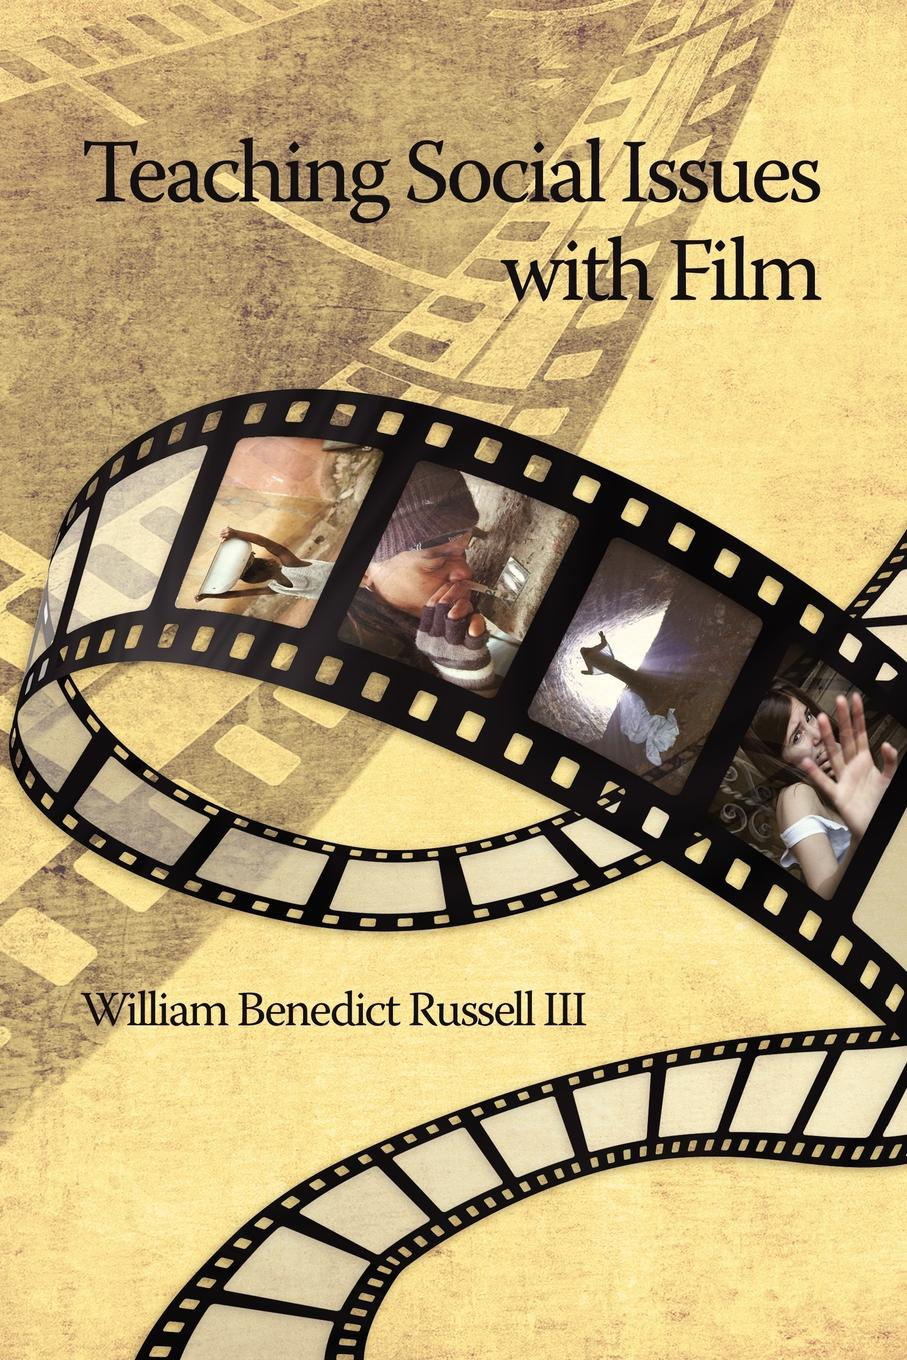 William Benedict III Russell Teaching Social Issues with Film (PB) charles epting silent film quarterly issue 5